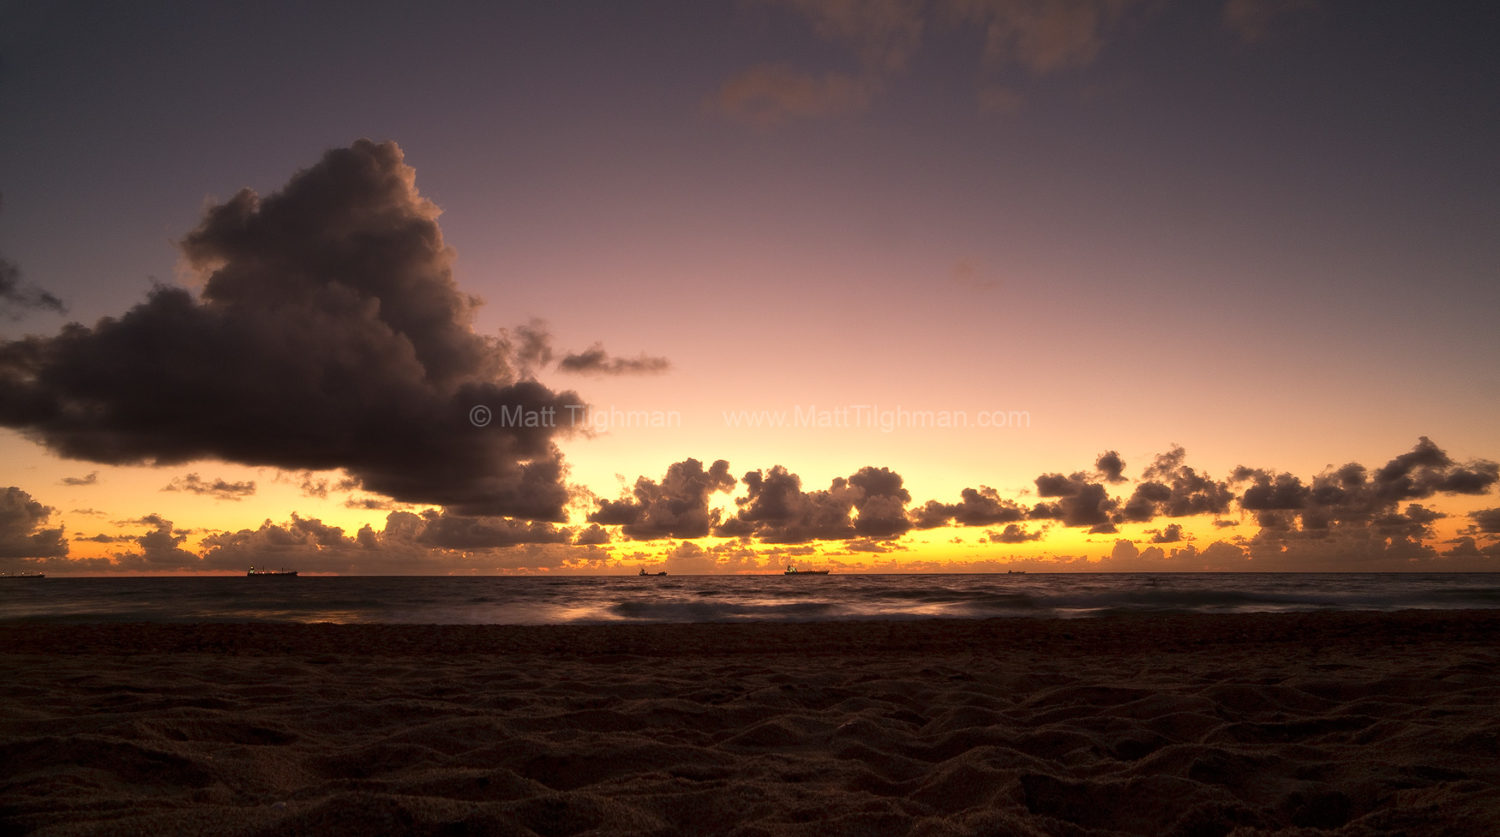 Fine art stock photograph of the South Florida coast, moments before sunrise. The tropical sky glows a deep gold, off the coast of Fort Lauderdale.